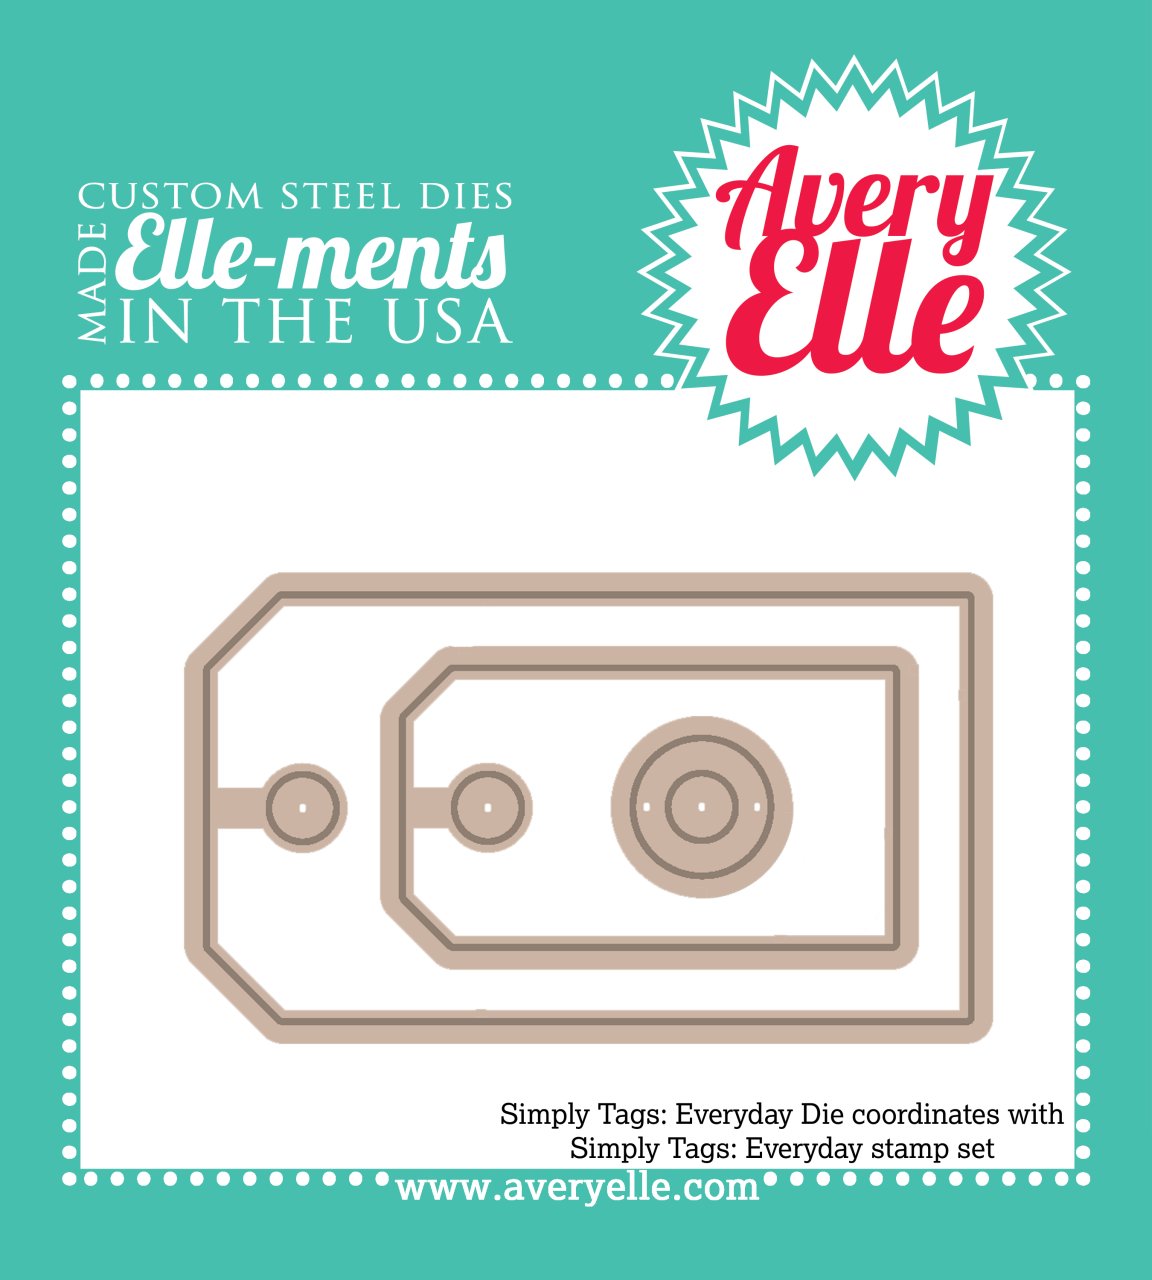 Our Simply Tags: Everyday Elle-ments Custom Steel Die are exclusive to Avery Elle and designed by Nina Yang. These premium steel dies coordinate with our Simply Tags: Everyday clear photopolymer stamp set and are proudly made in the USA.